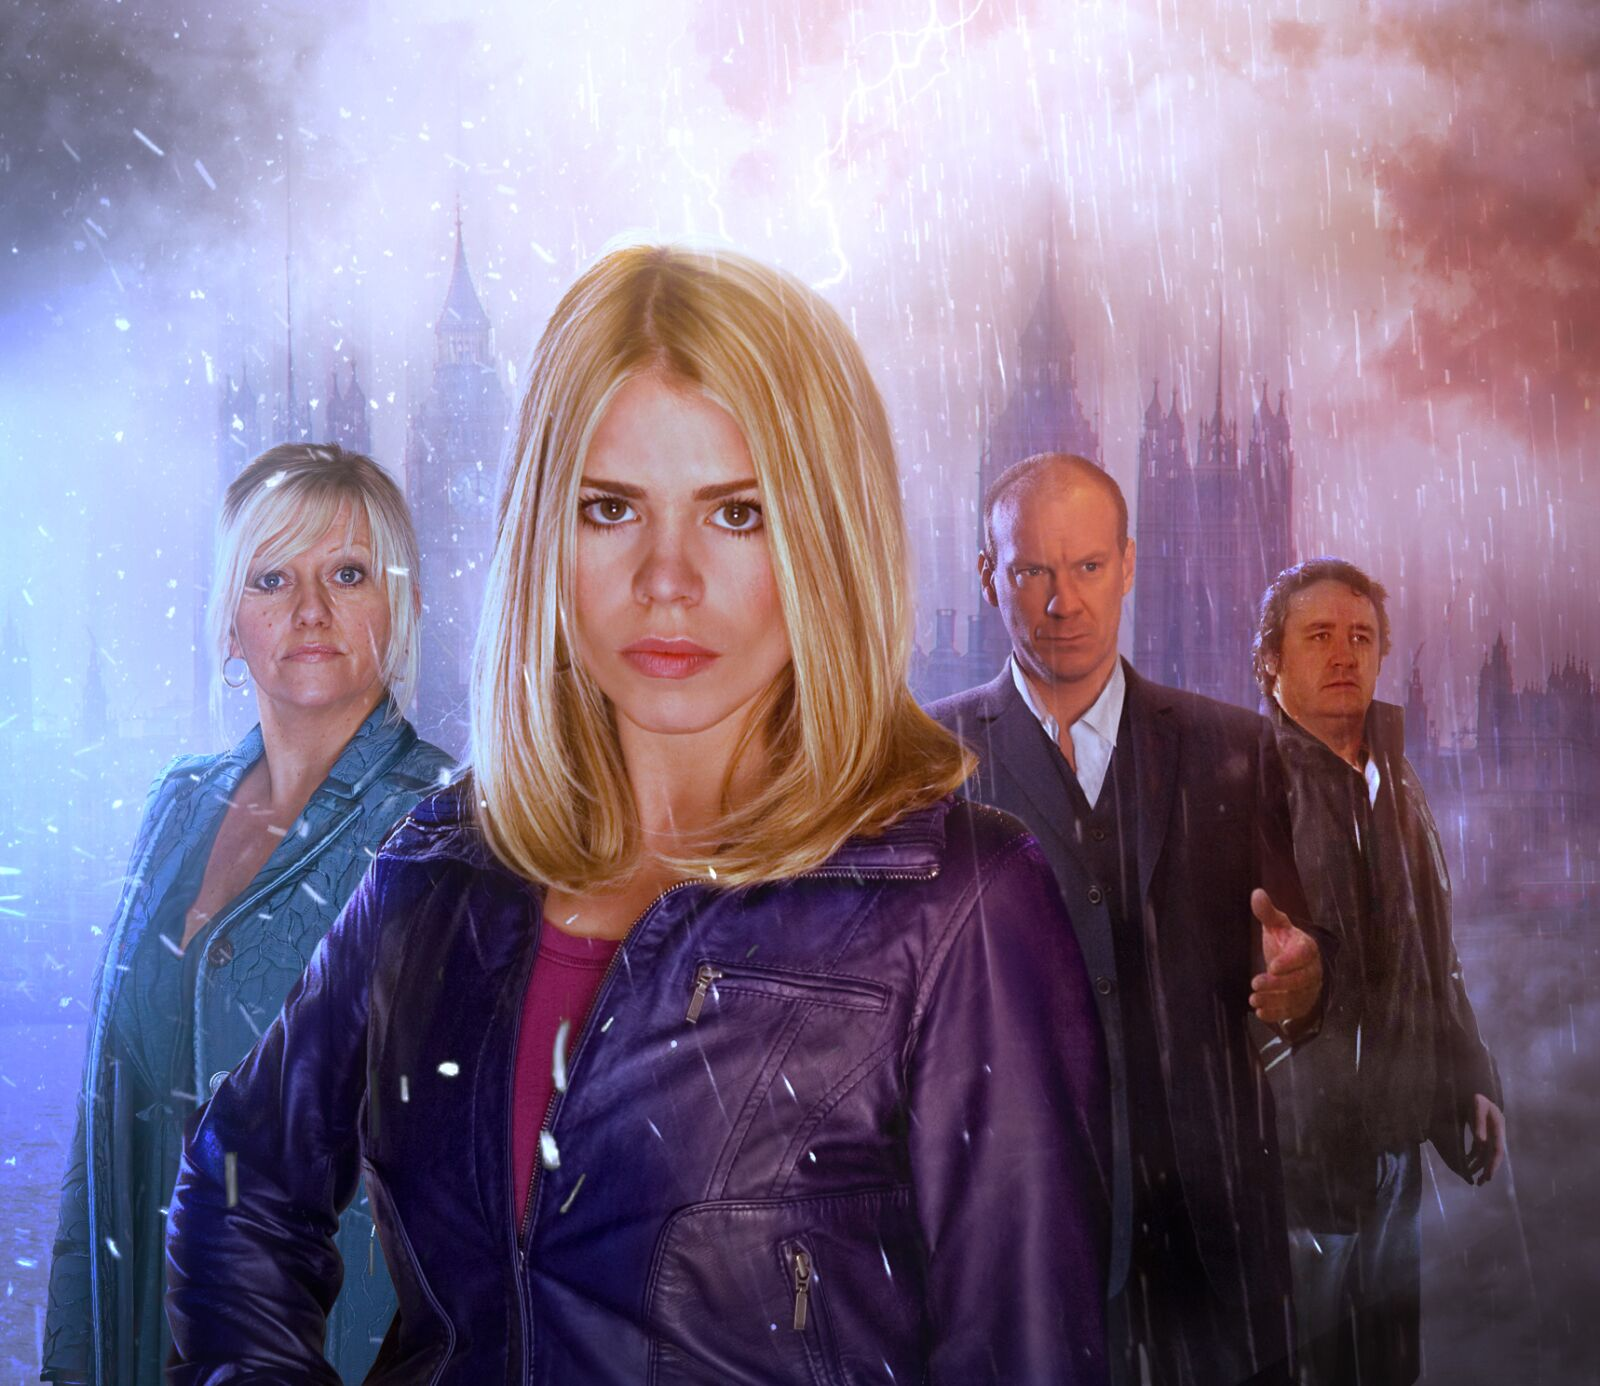 Doctor Who: Rose Tyler's new audio spin-off series is out now!